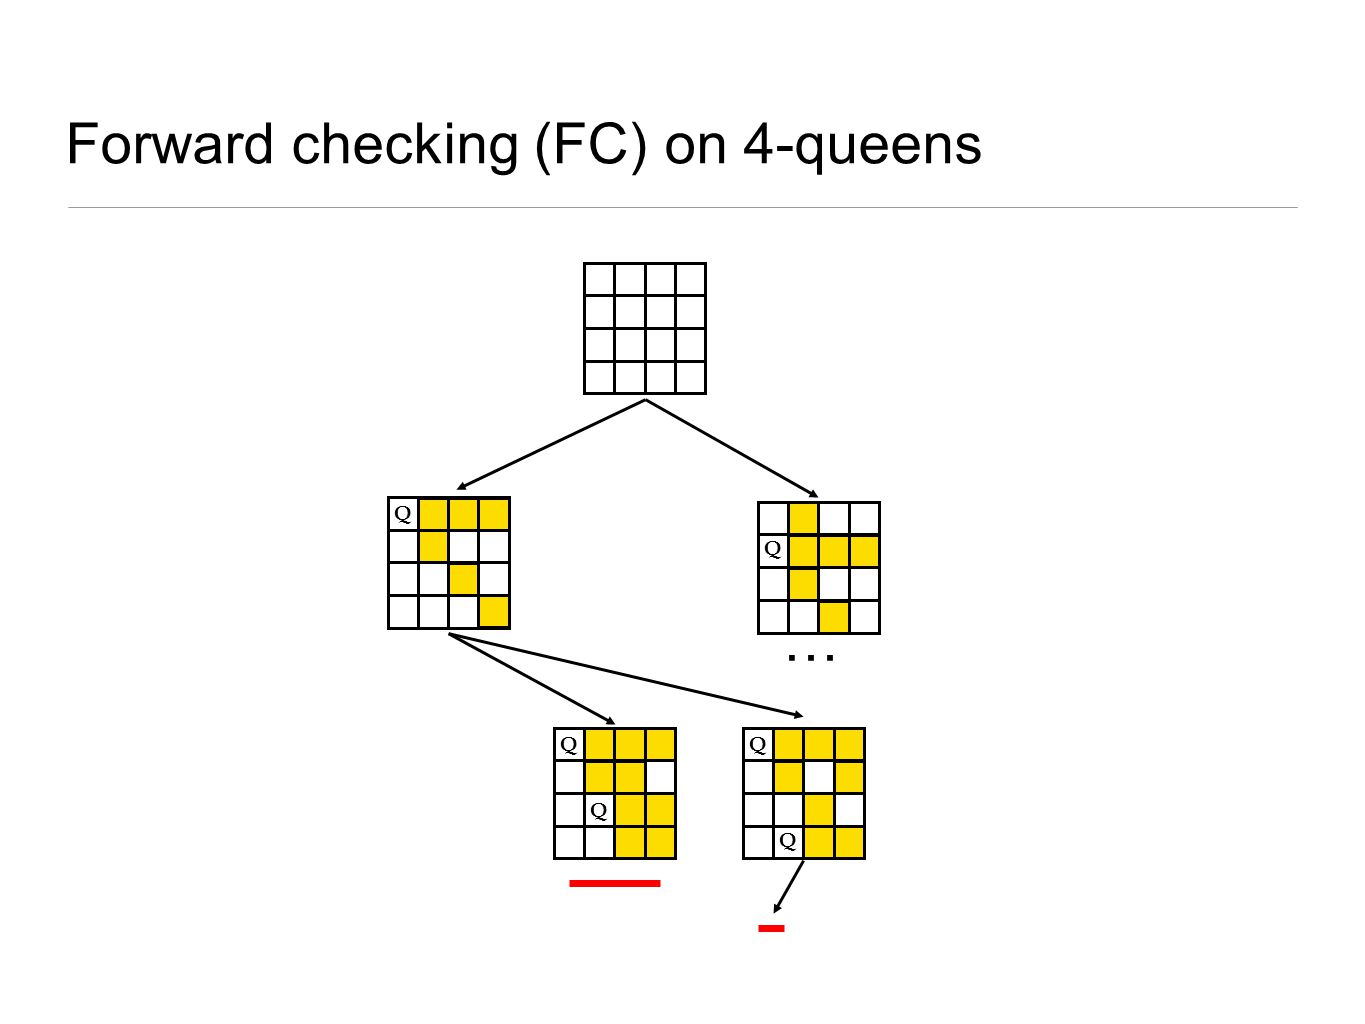 Forward checking (FC) on 4-queens